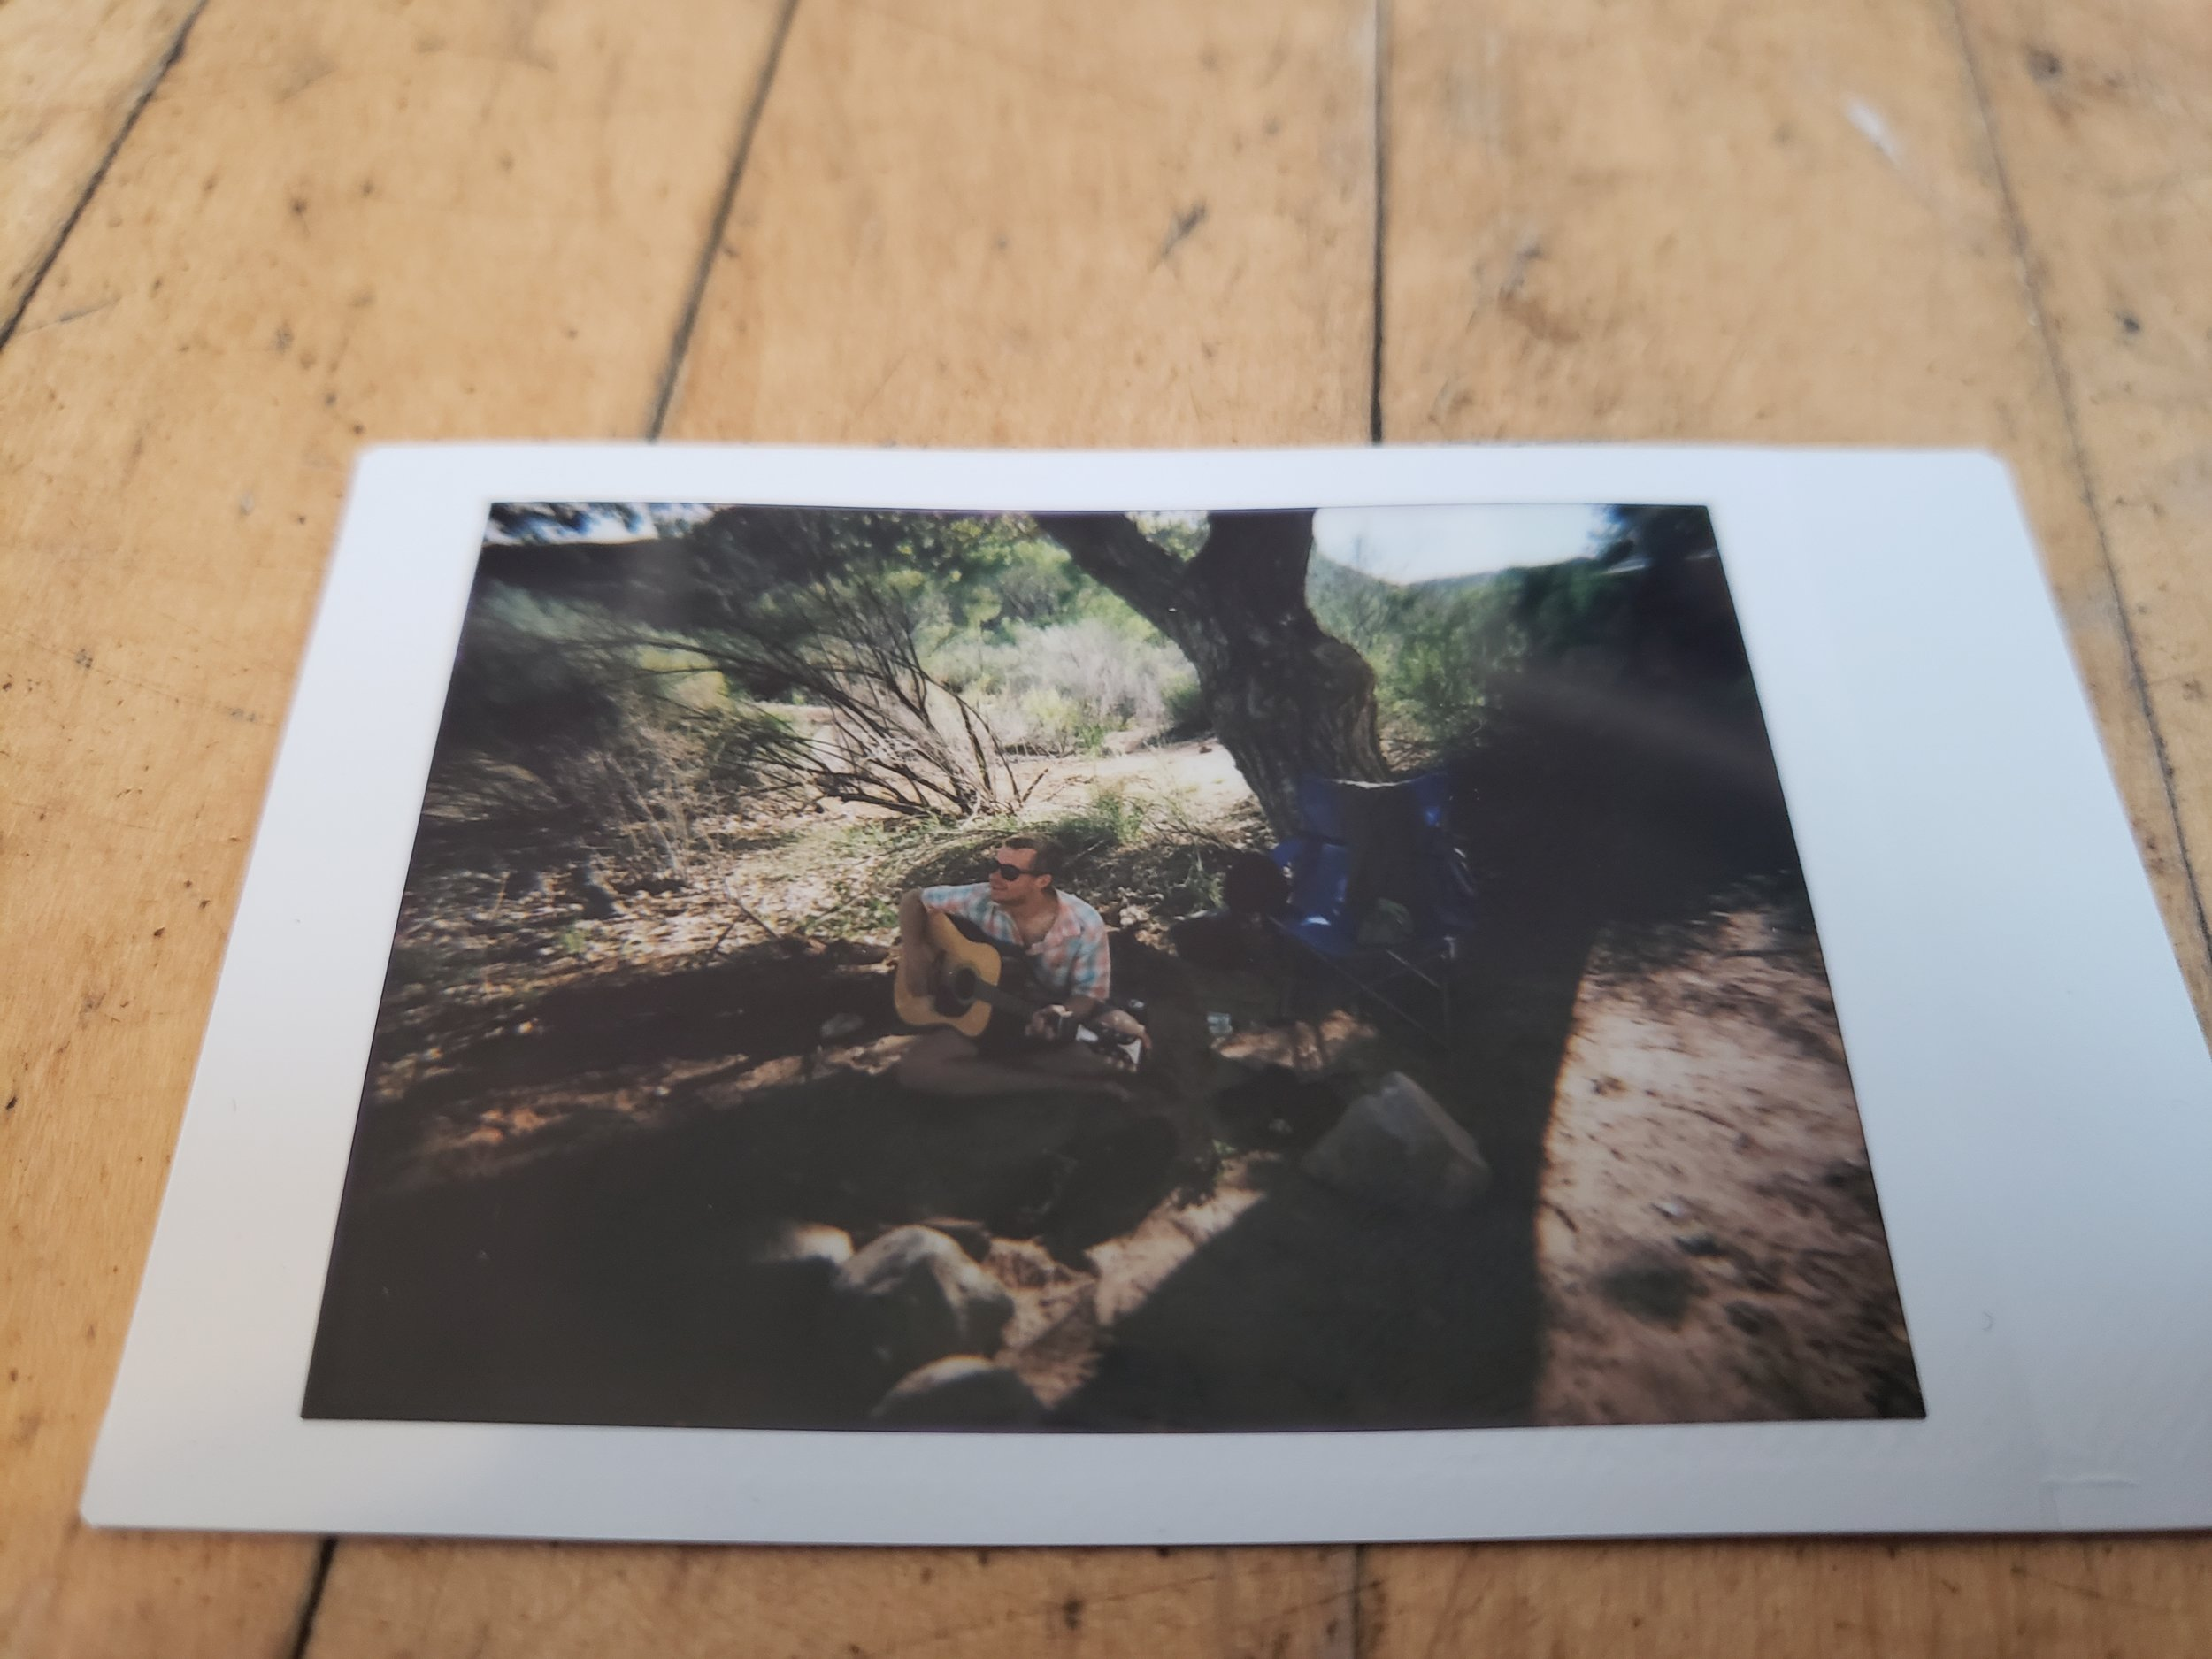 Utah 2019- Alyssa Johnson - Blind Spot Creatives - Photography - Zion National Park - Poloroid